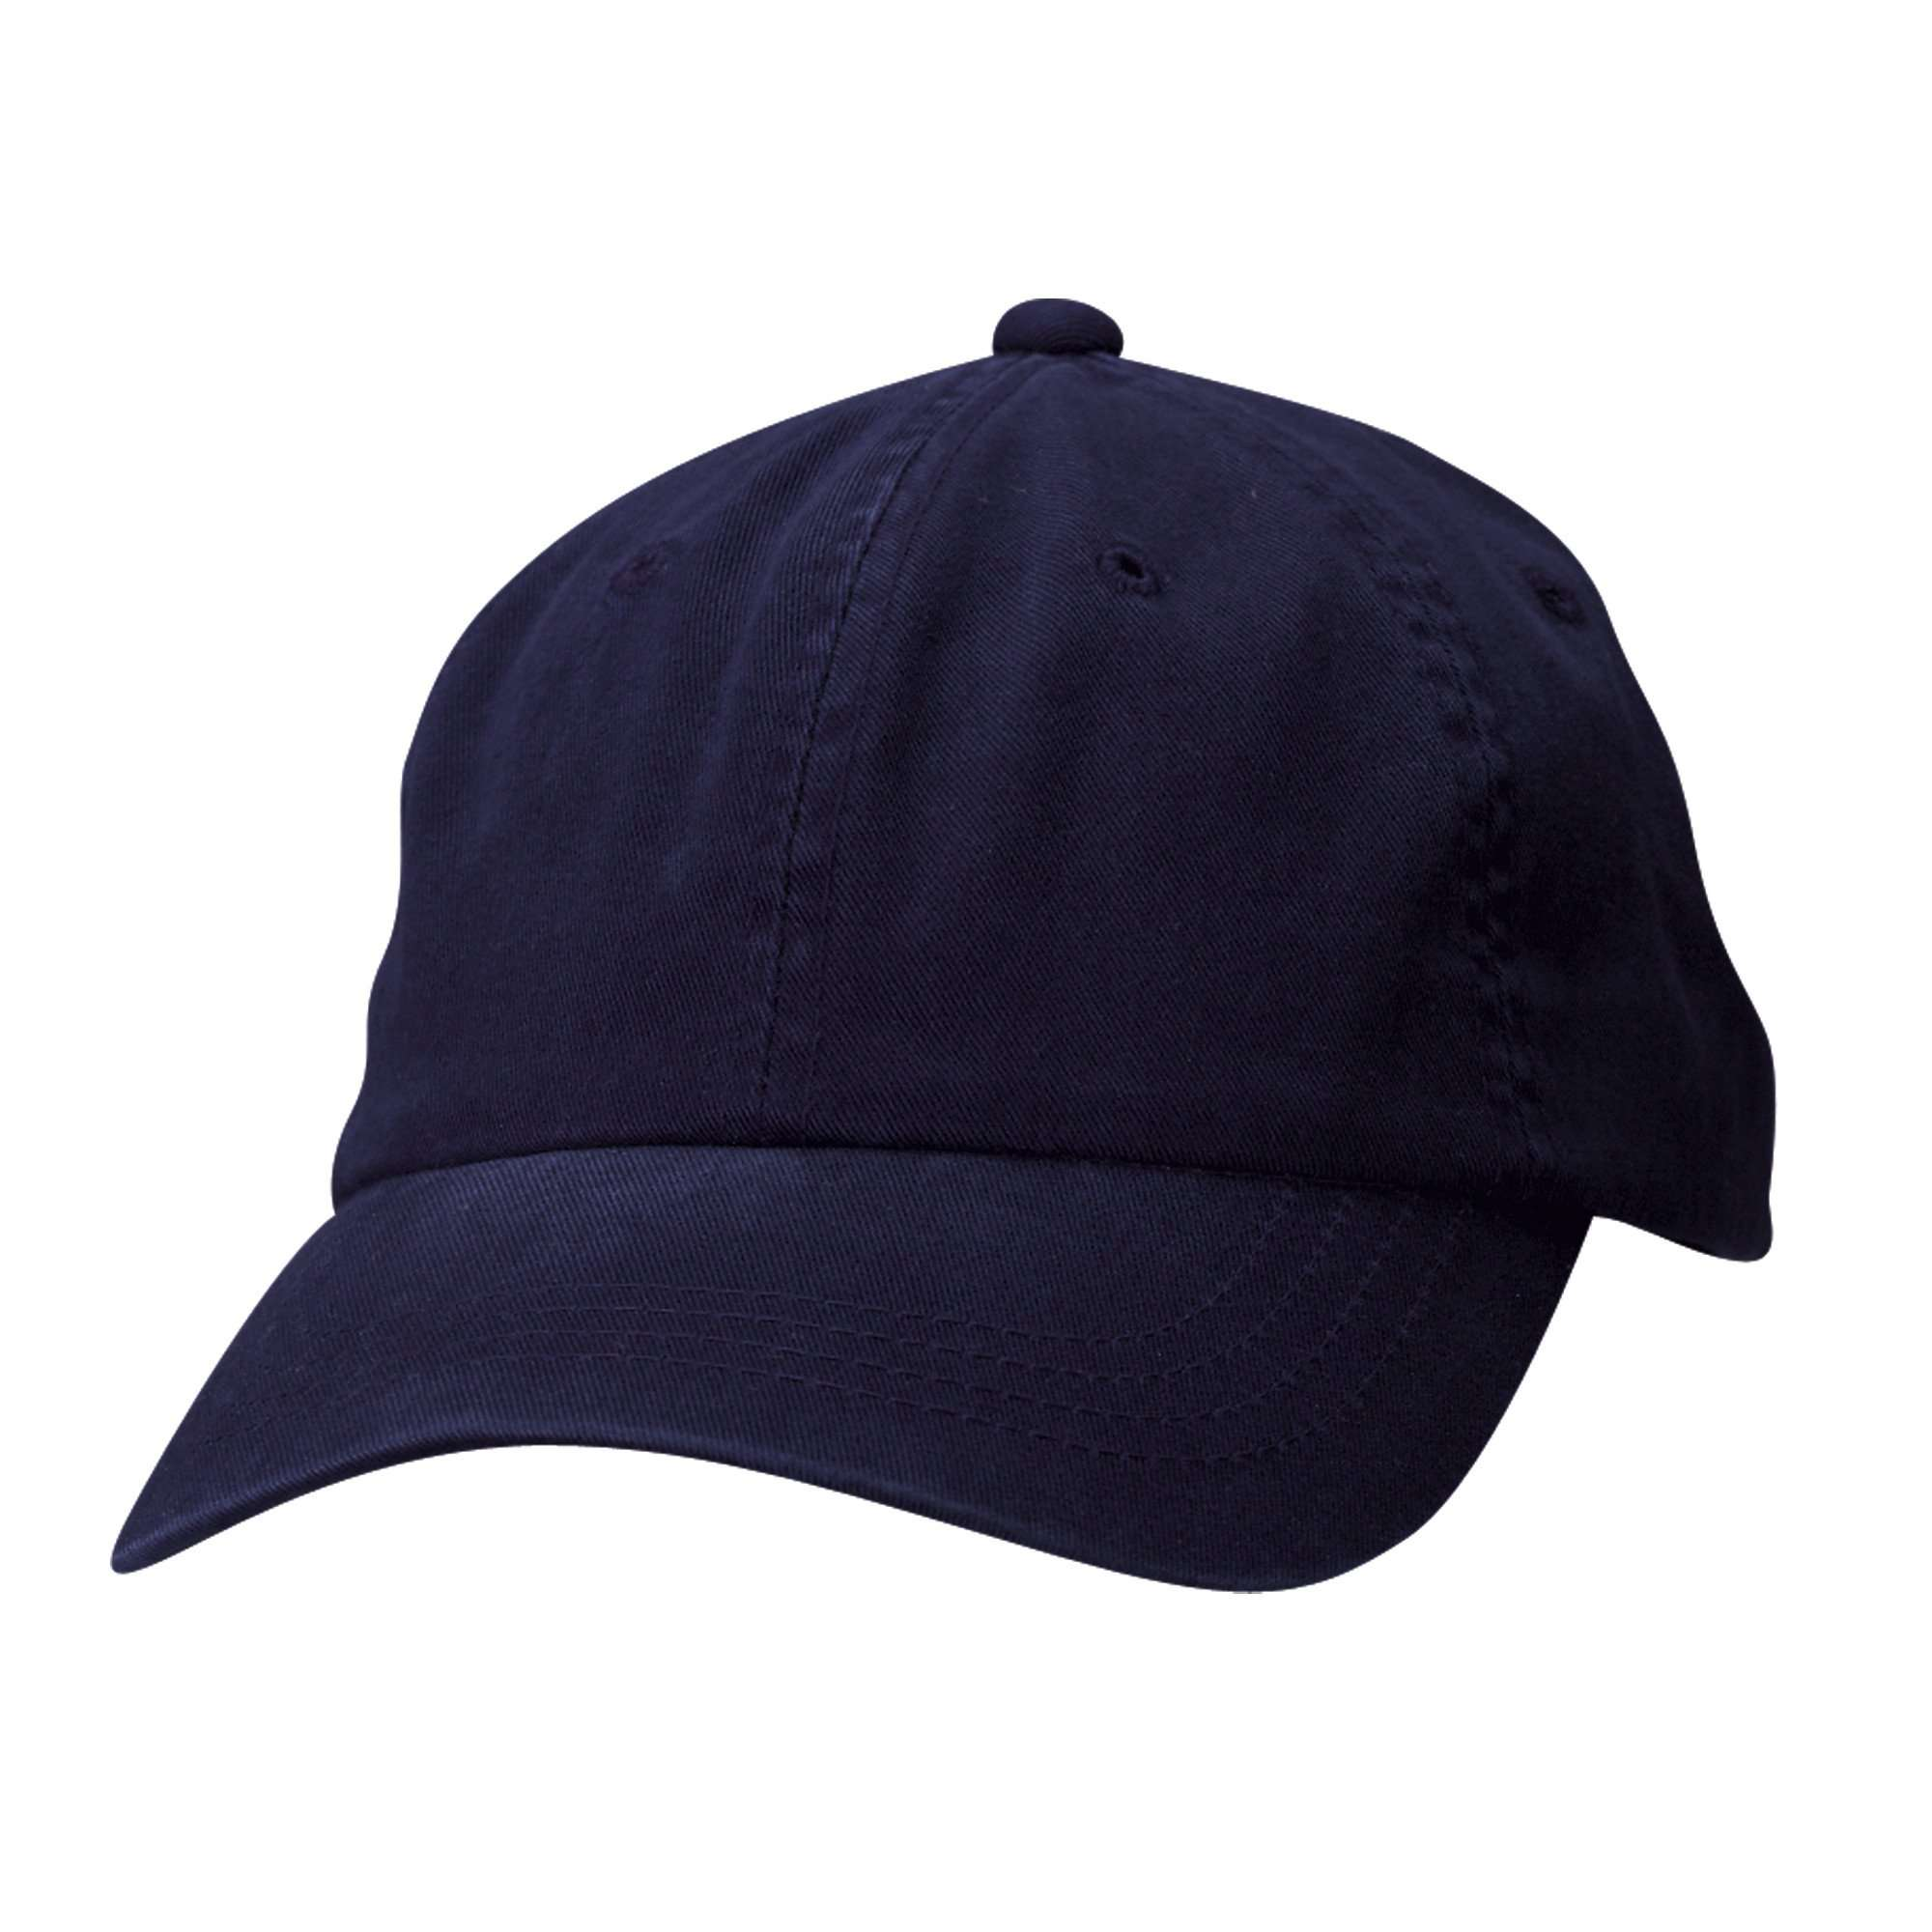 DPC Kid's Twill Baseball Cap - SetarTrading Hats